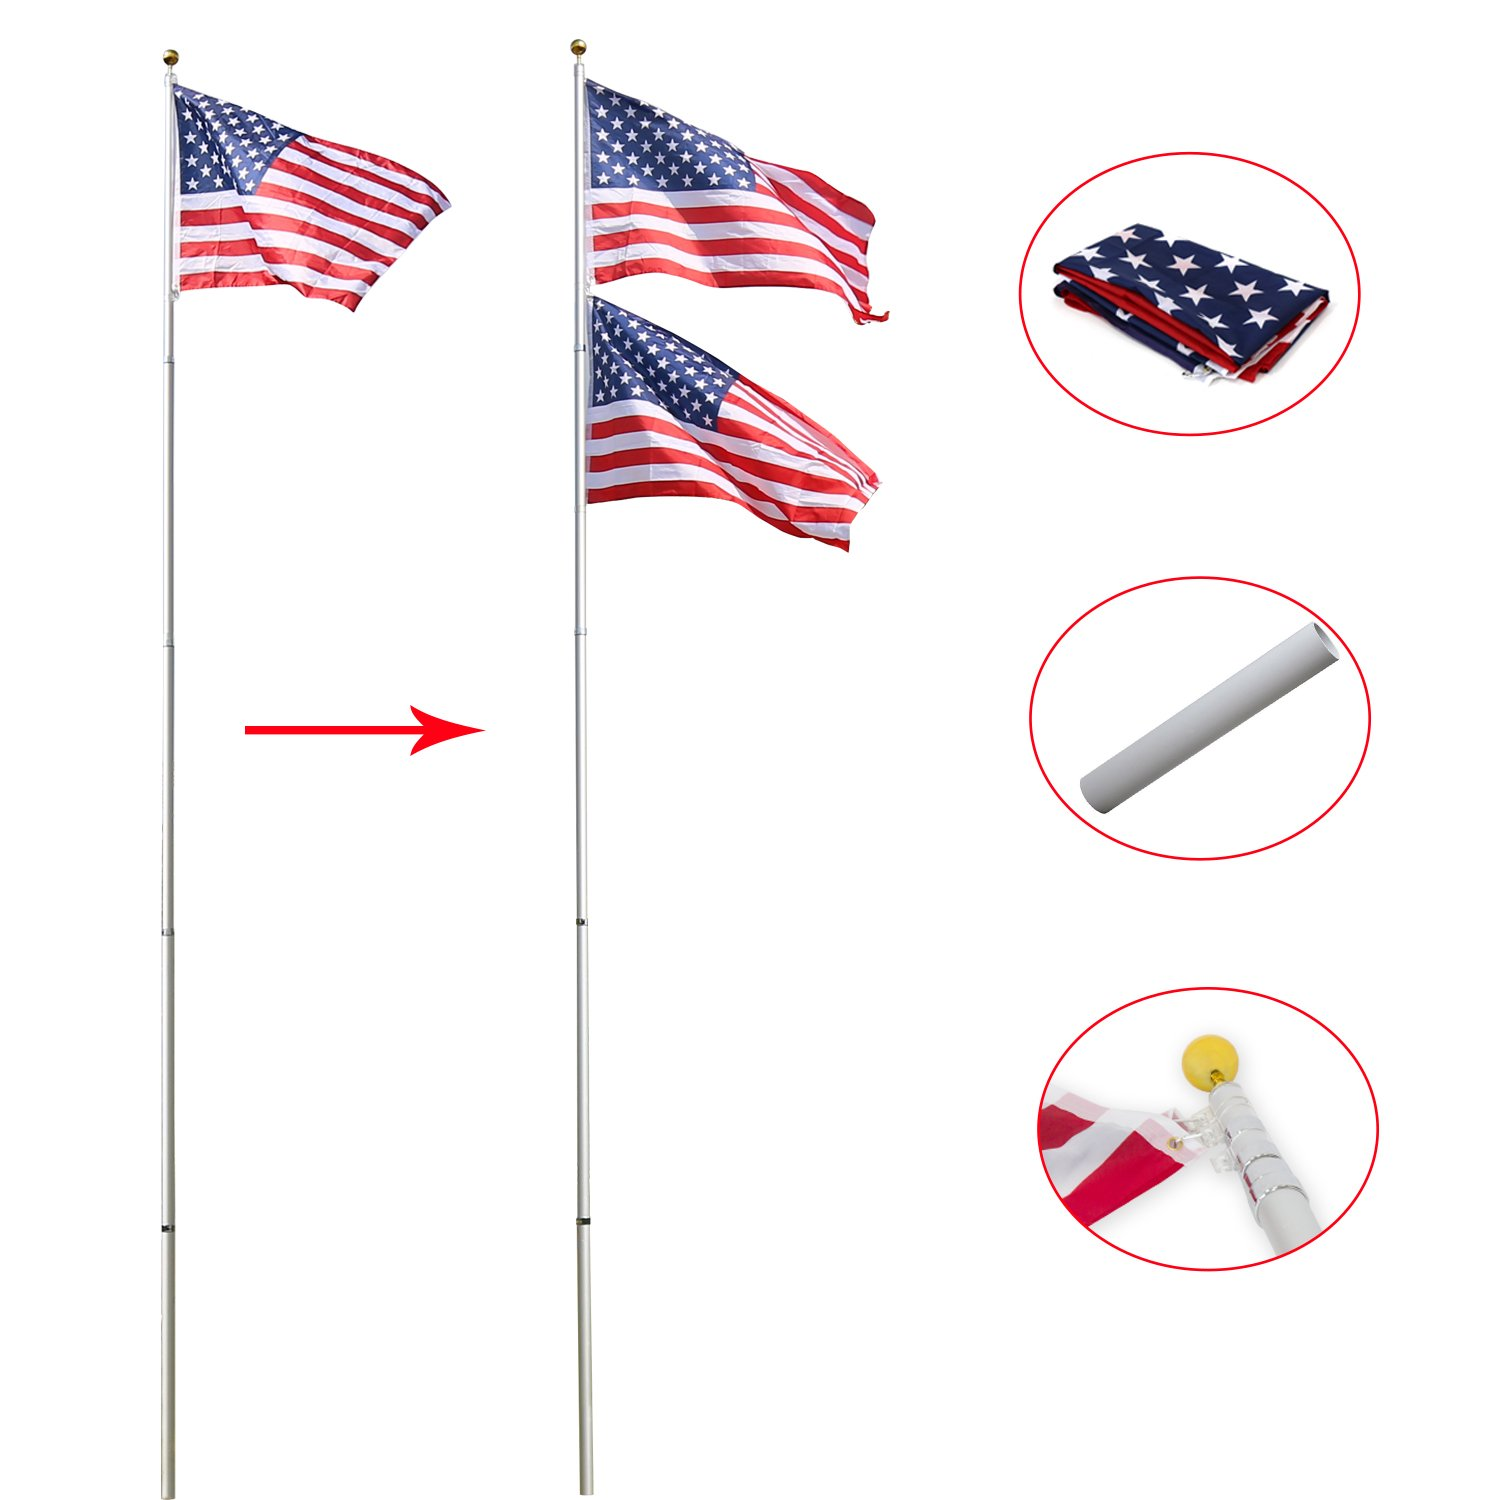 Peach Tree Basic Portable Commercial Flag Pole Outdoor Garden Construction Heavy Duty Aluminum Alloy with two USA flags, Silver (16ft)